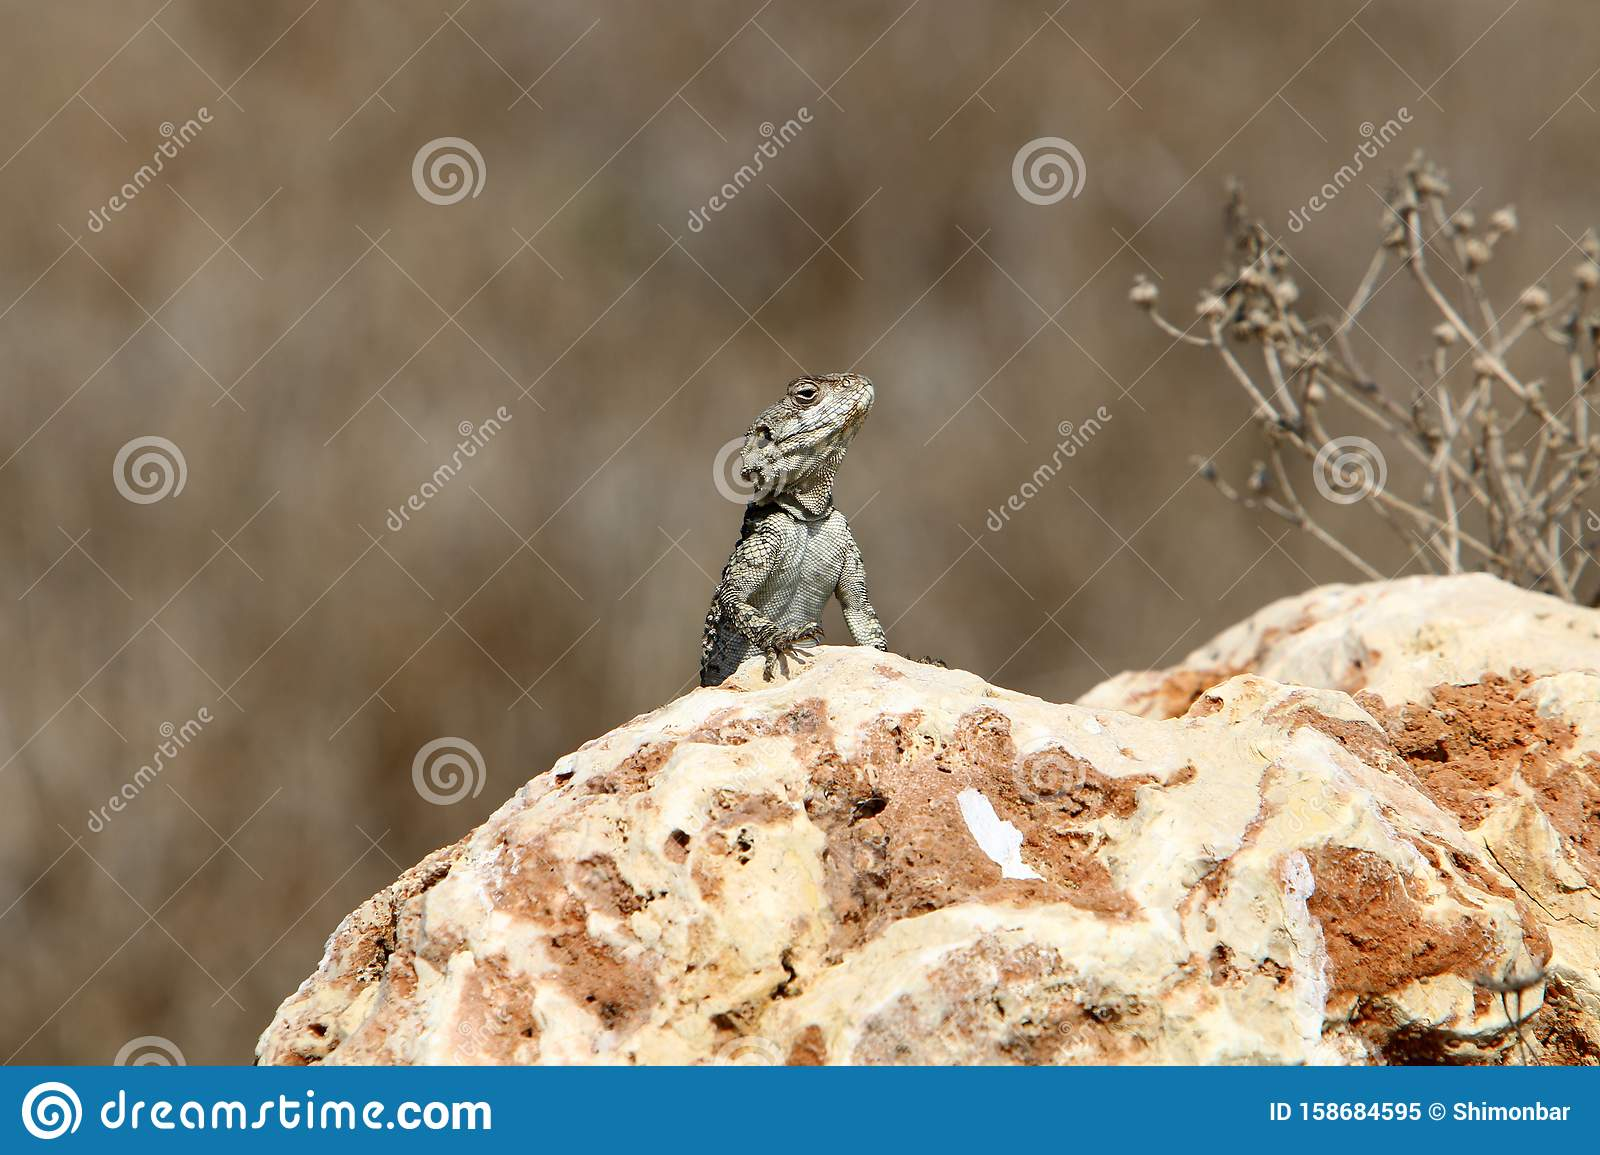 A lizard sits on a large stone on the shores of the Mediterranean Sea and basks in the sun